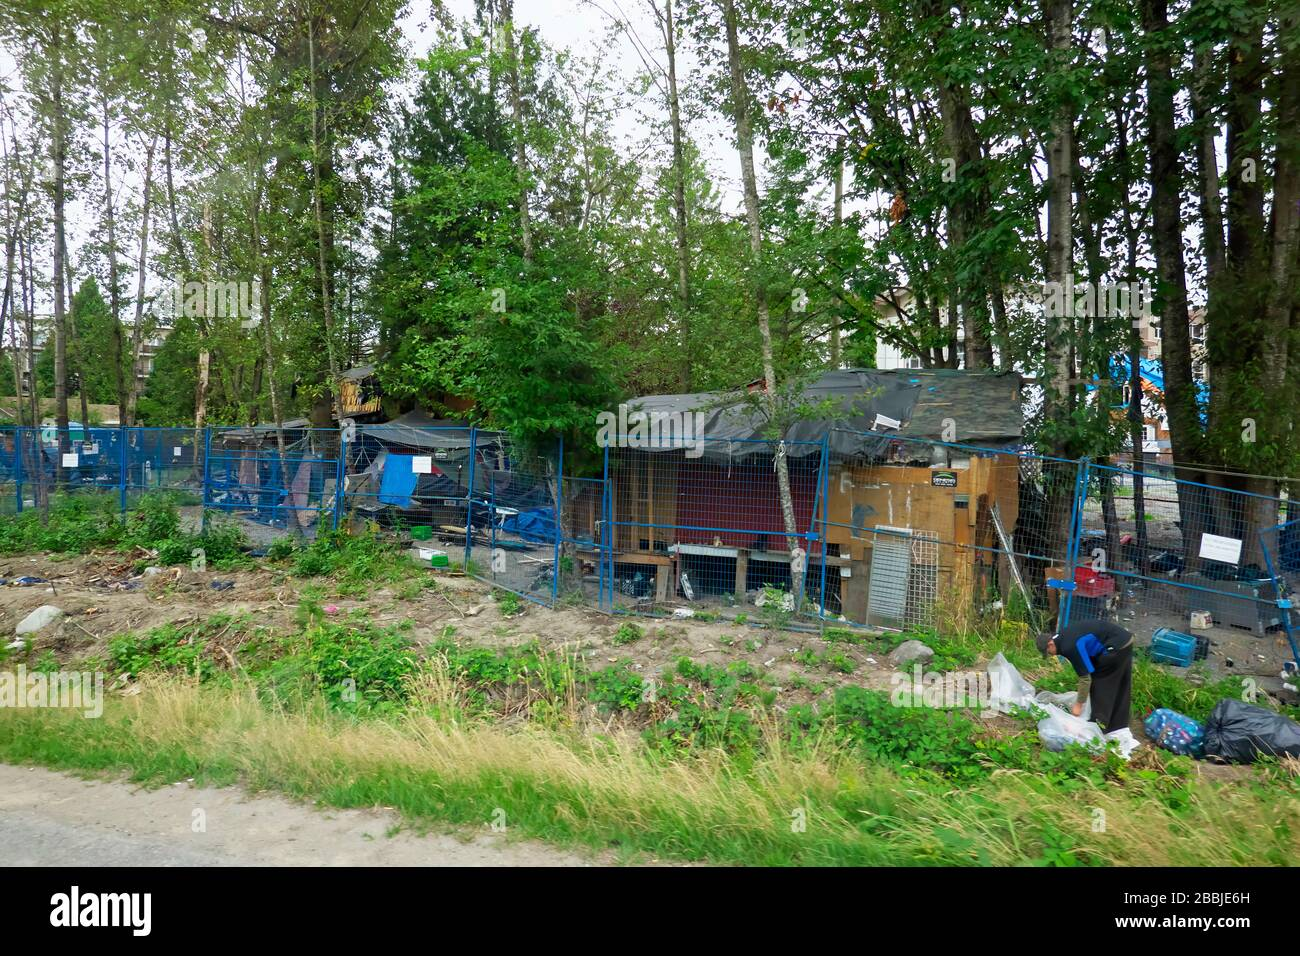 homeless-camp-known-as-anita-place-in-maple-ridge-b-c-canada-it-has-since-been-dismantled-2BBJE6H.jpg?profile=RESIZE_400x